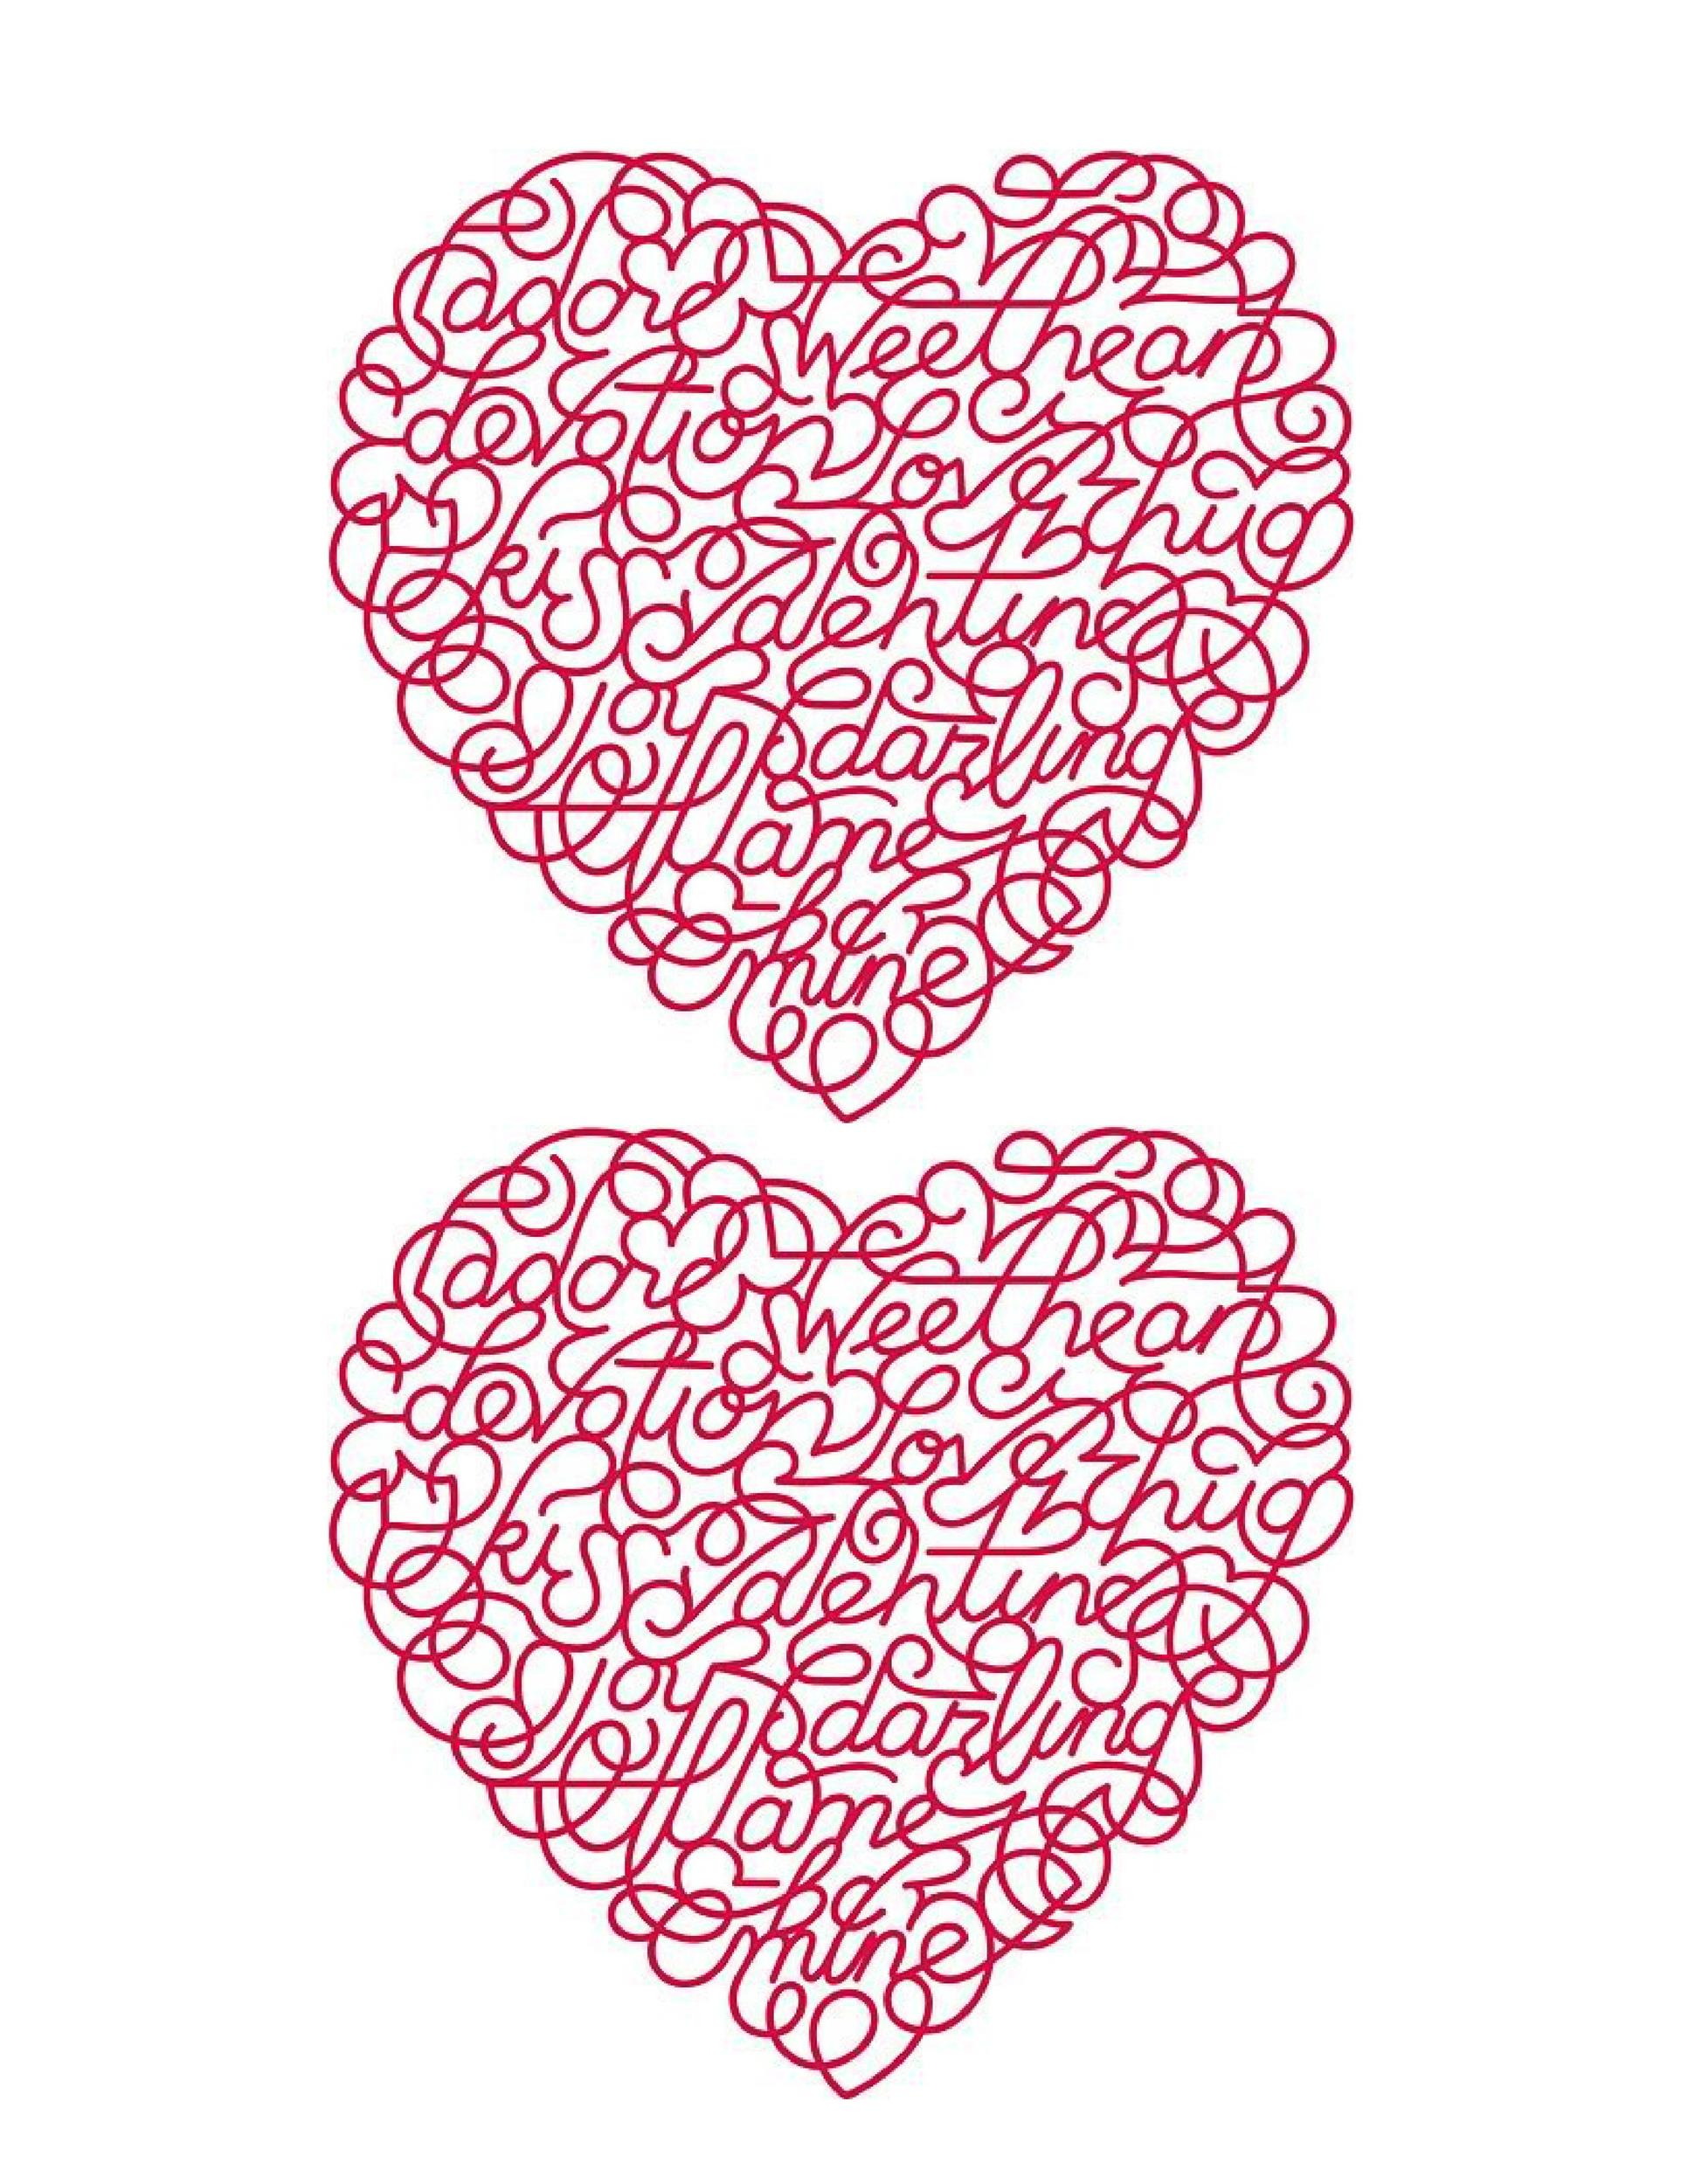 photo relating to Printable Heart Stencils named 40 Printable Centre Templates 15 Use Illustrations